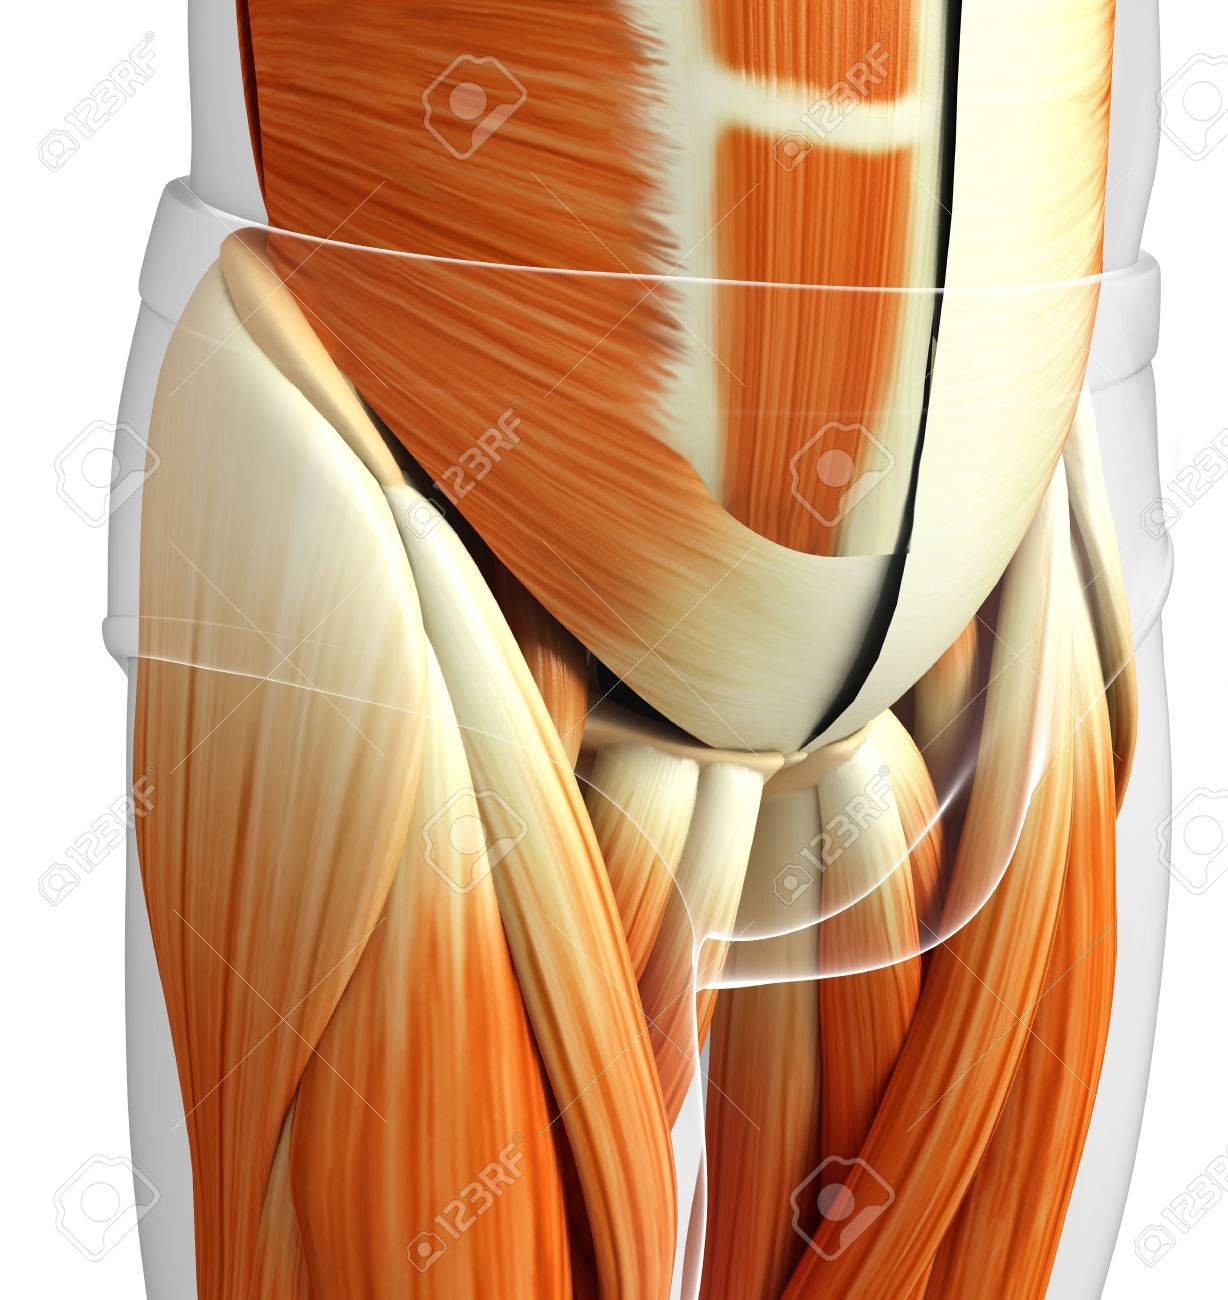 3d Rendered Illustration Of Male Pelvic Muscles Anatomy Stock Photo ...